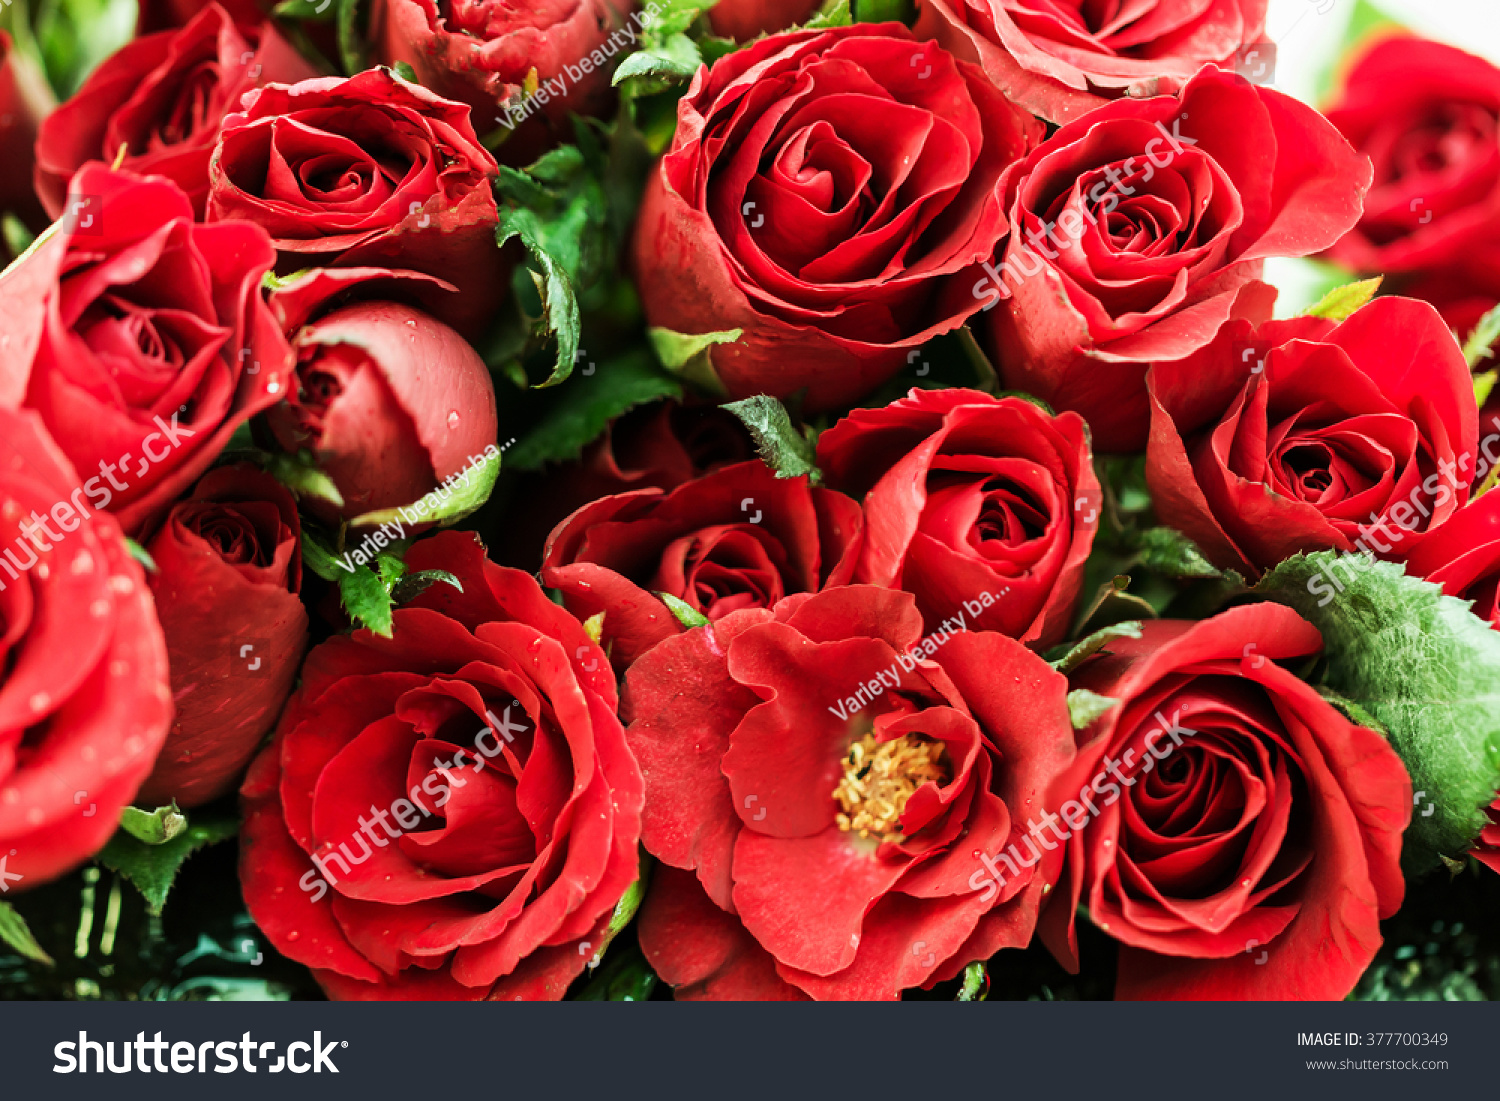 Red roses symbol love stock photo 377700349 shutterstock red roses are the symbol of love buycottarizona